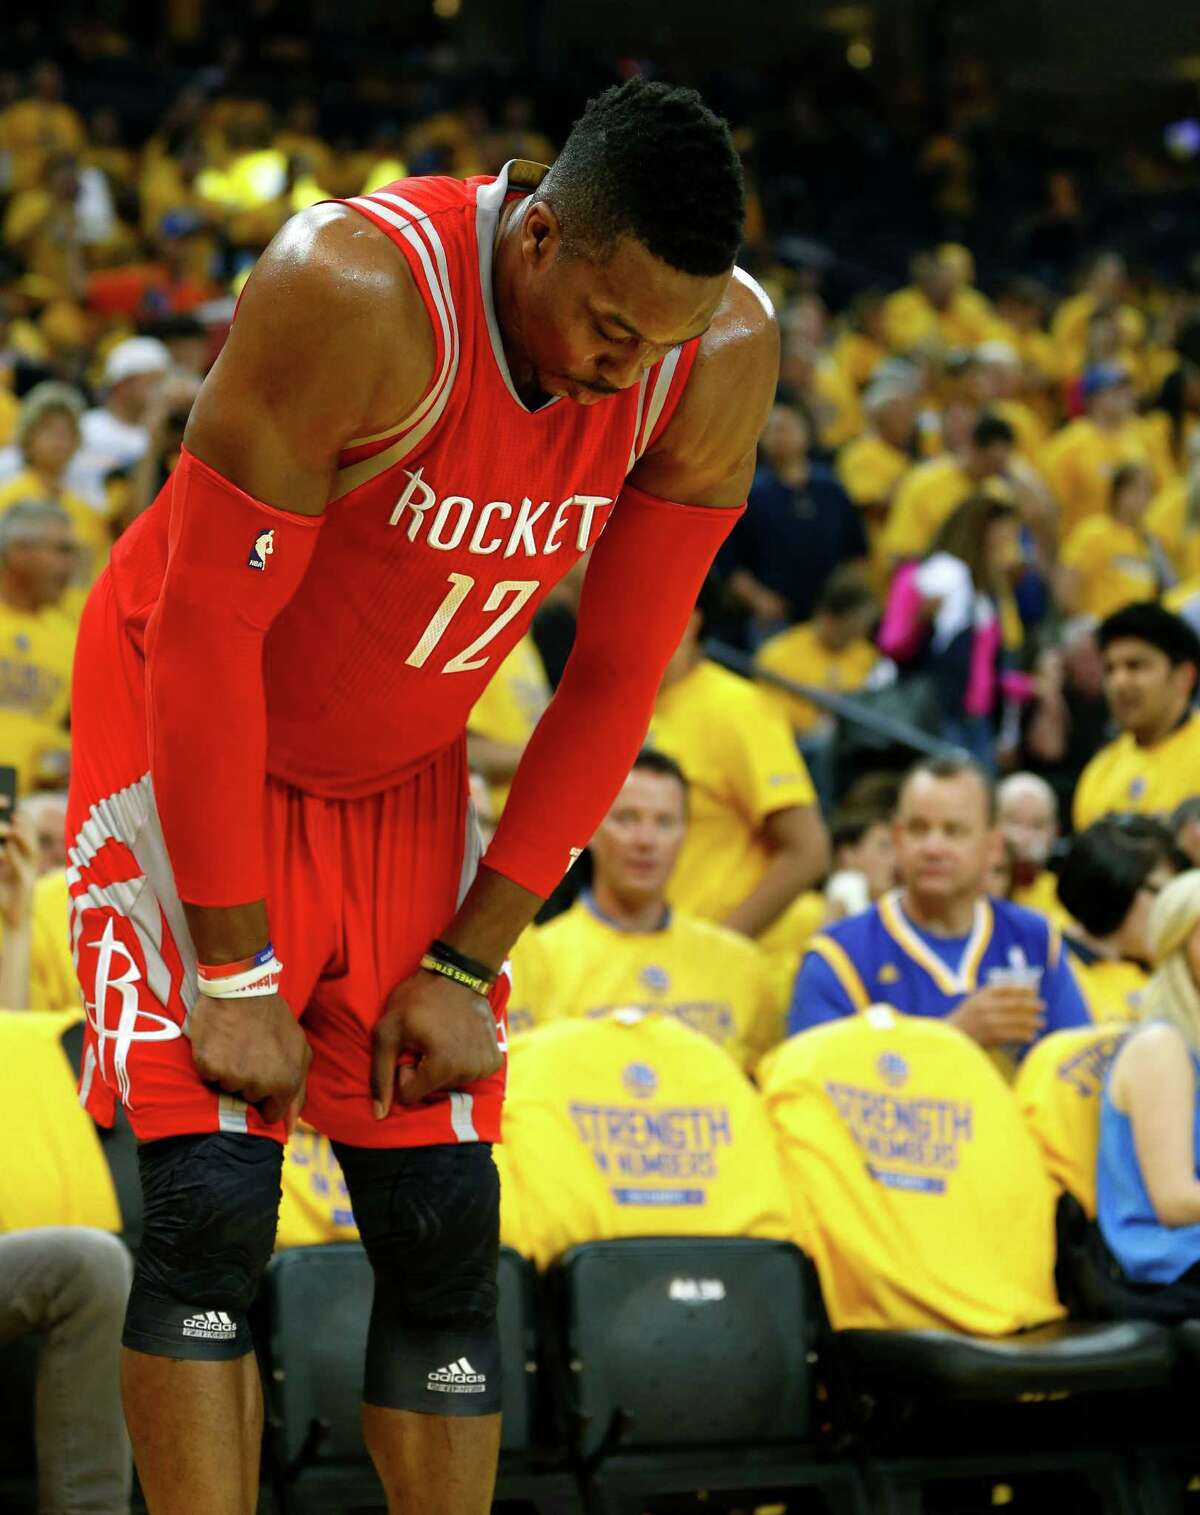 Rockets center Dwight Howard was limited to seven points Tuesday night after suffering a left knee bruise.